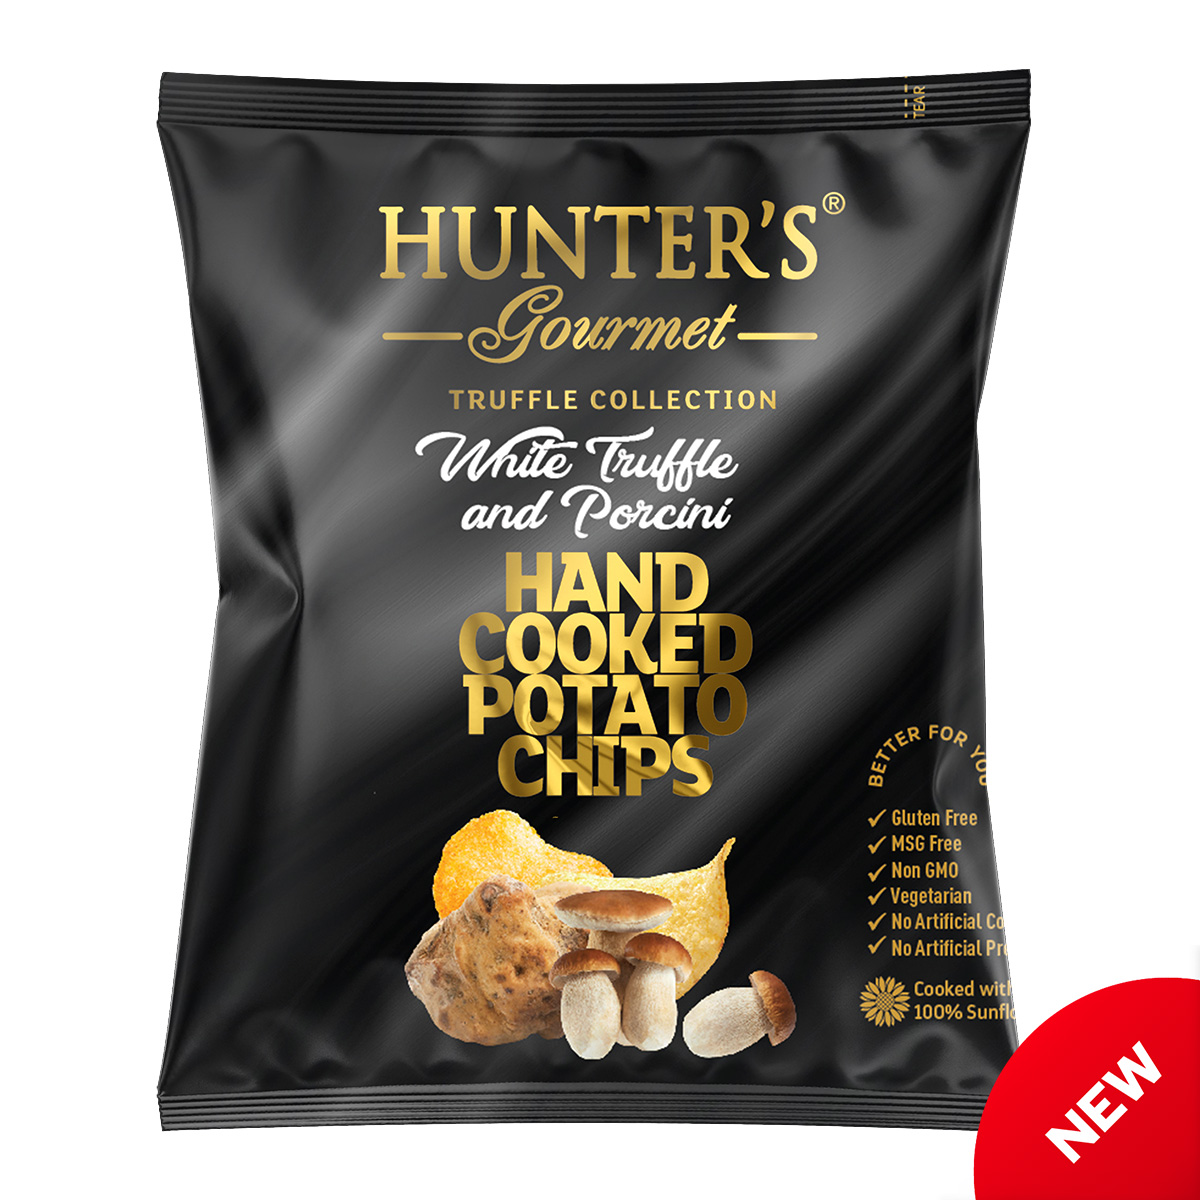 Hunter's Gourmet Hand Cooked Potato Chips – White Truffle – Truffle Collection (25gm)